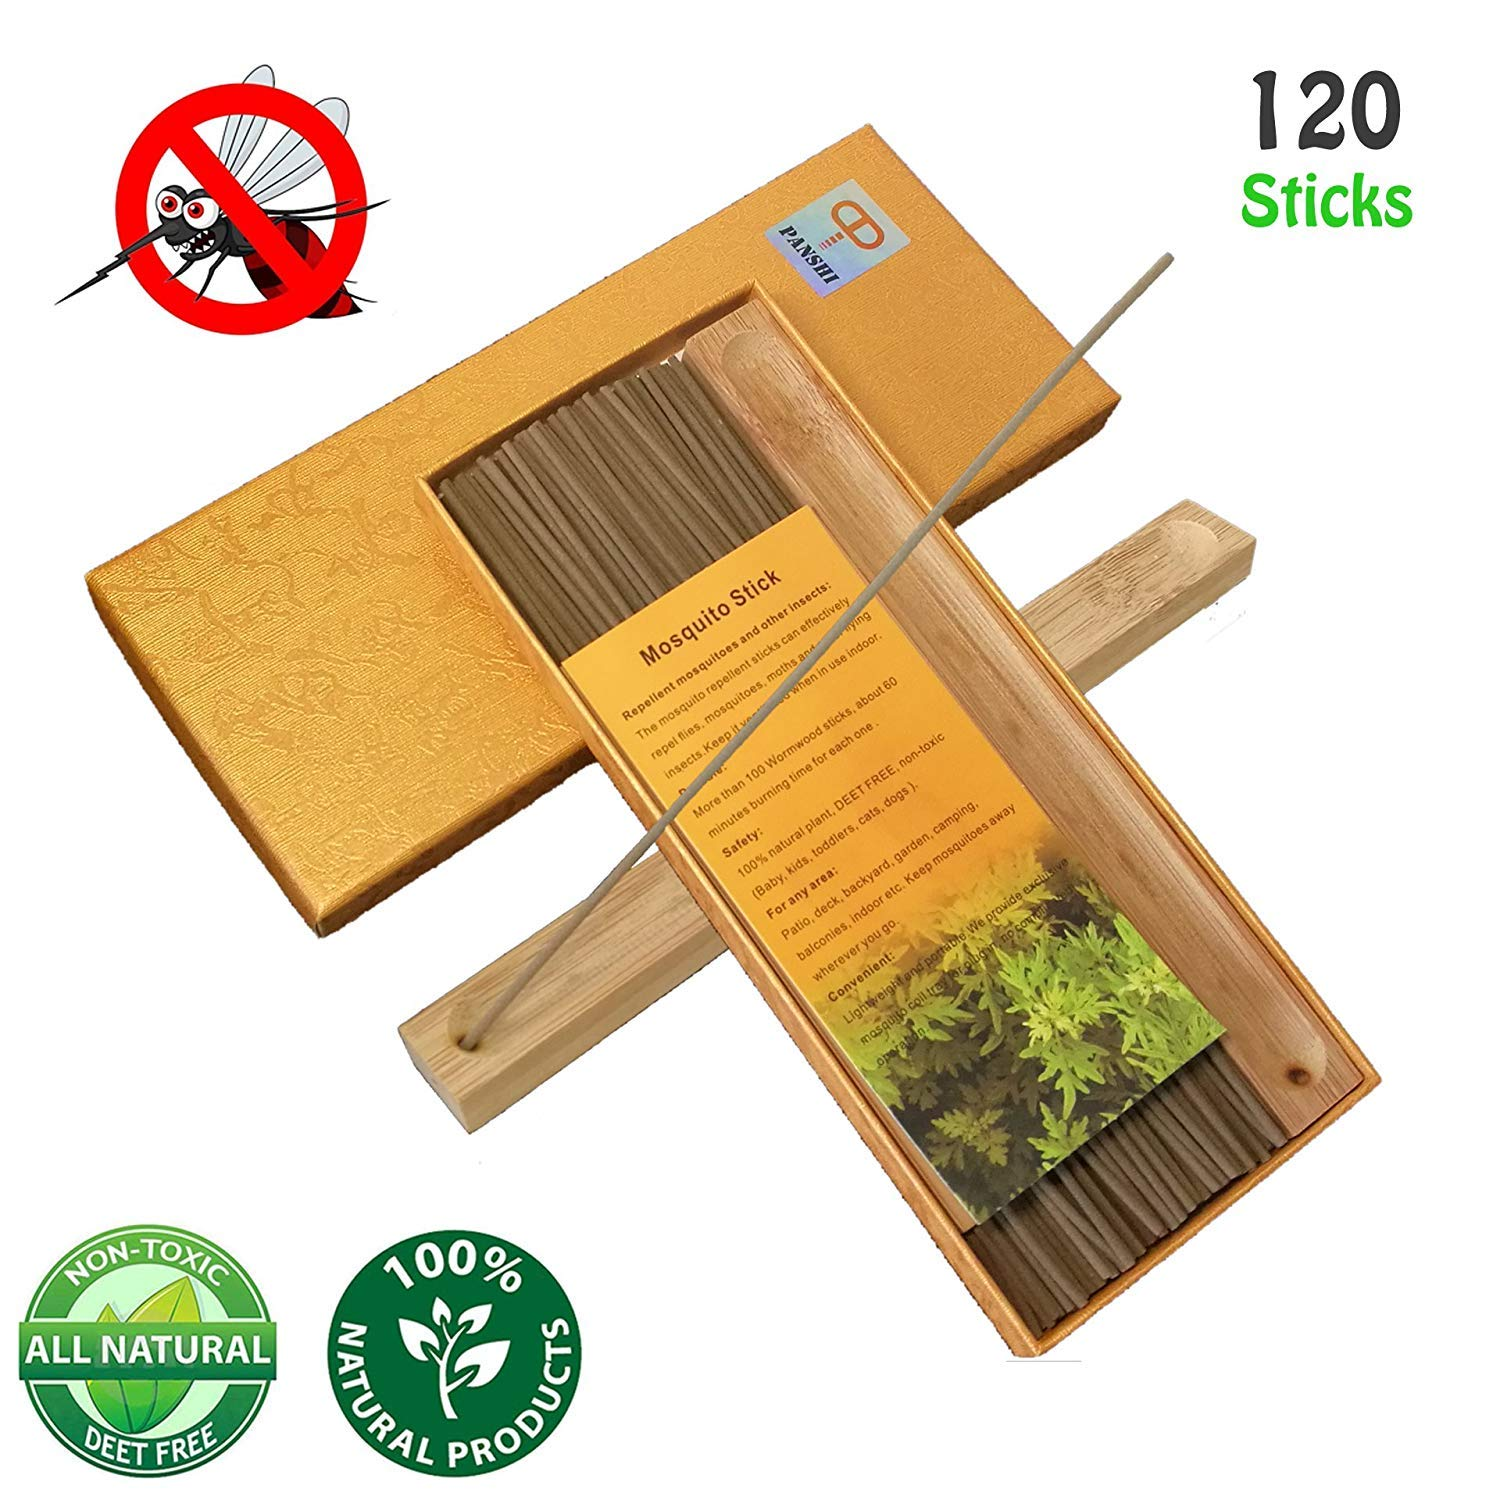 Amazon.com : Panshi Premium Mosquito Repellent Sticks With Exclusive  Holder, 100% Natural Citronella And Aromatic, DEET Free, Non Toxic, Insect  Bug Pest ...